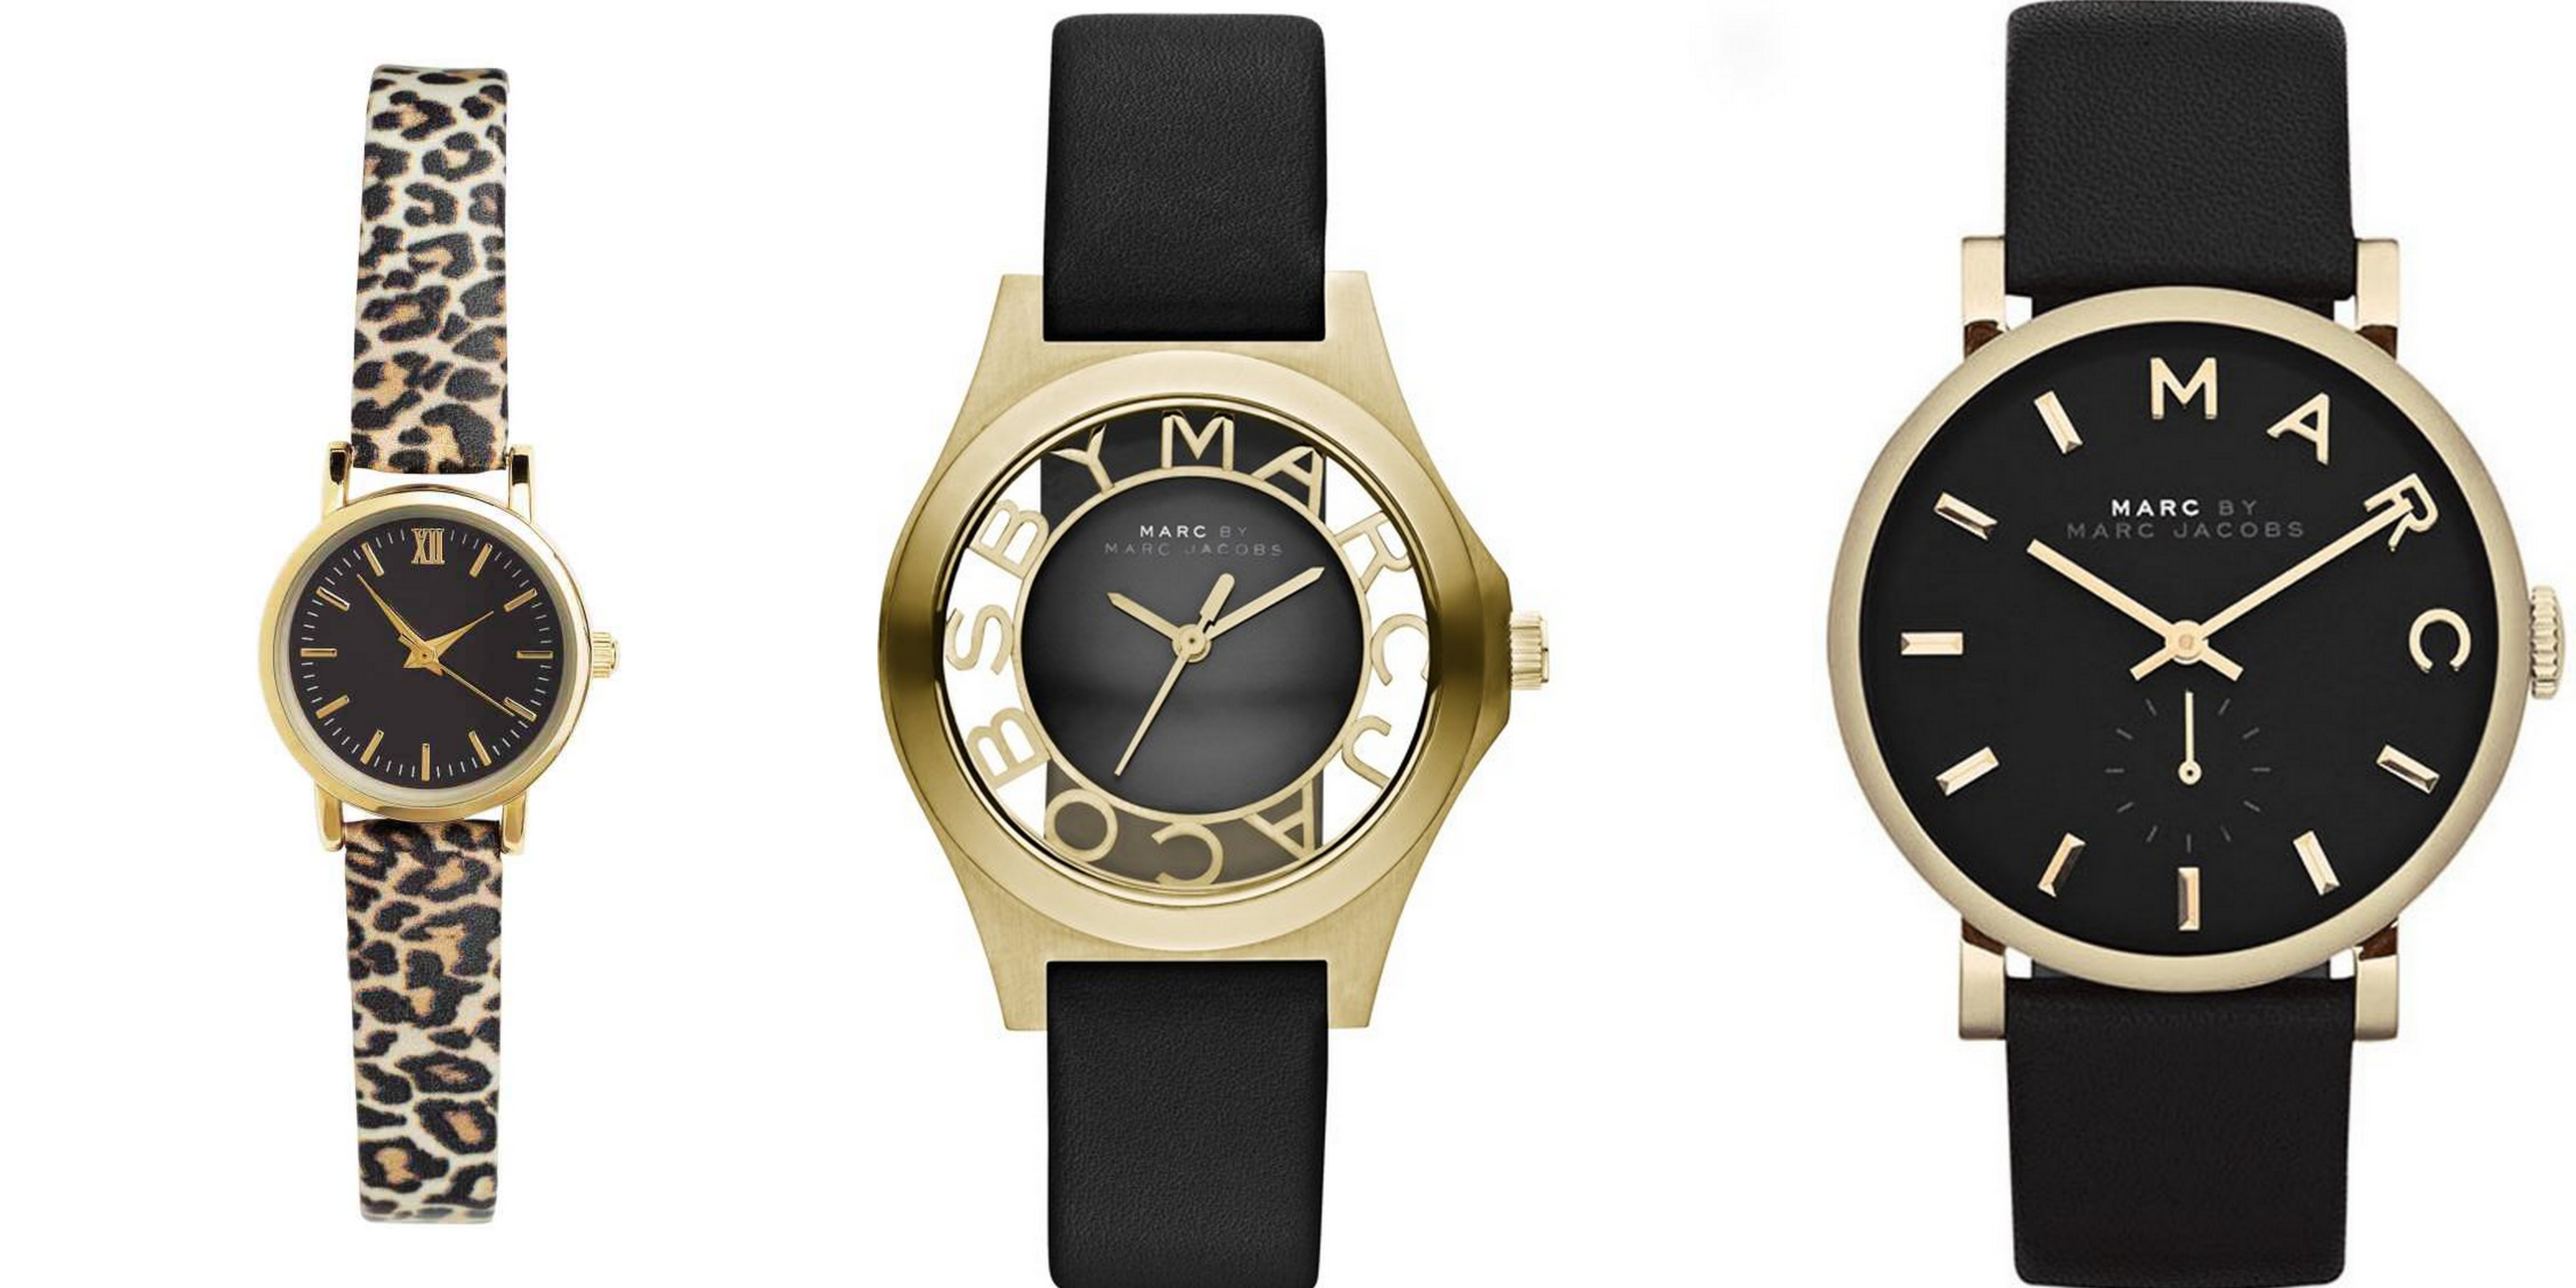 Watch H&M - €14,99 | Watch Marc by Marc Jacobs - €209 | Watch Marc by Marc Jacobs - €199